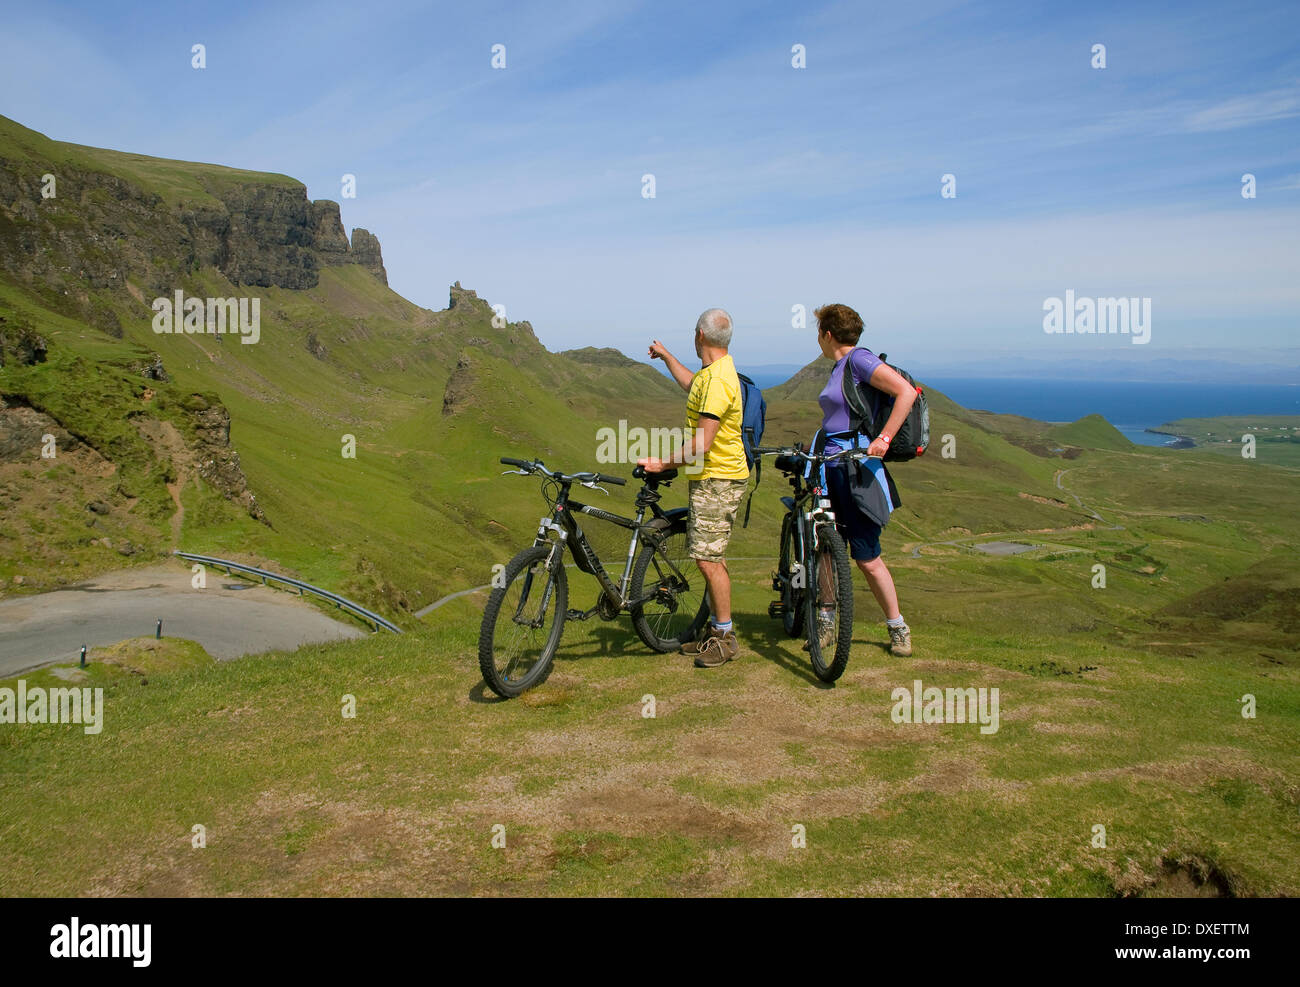 Cyclists pause to take in the magnificent view at the Quiraing pass, Isle of Skye. - Stock Image